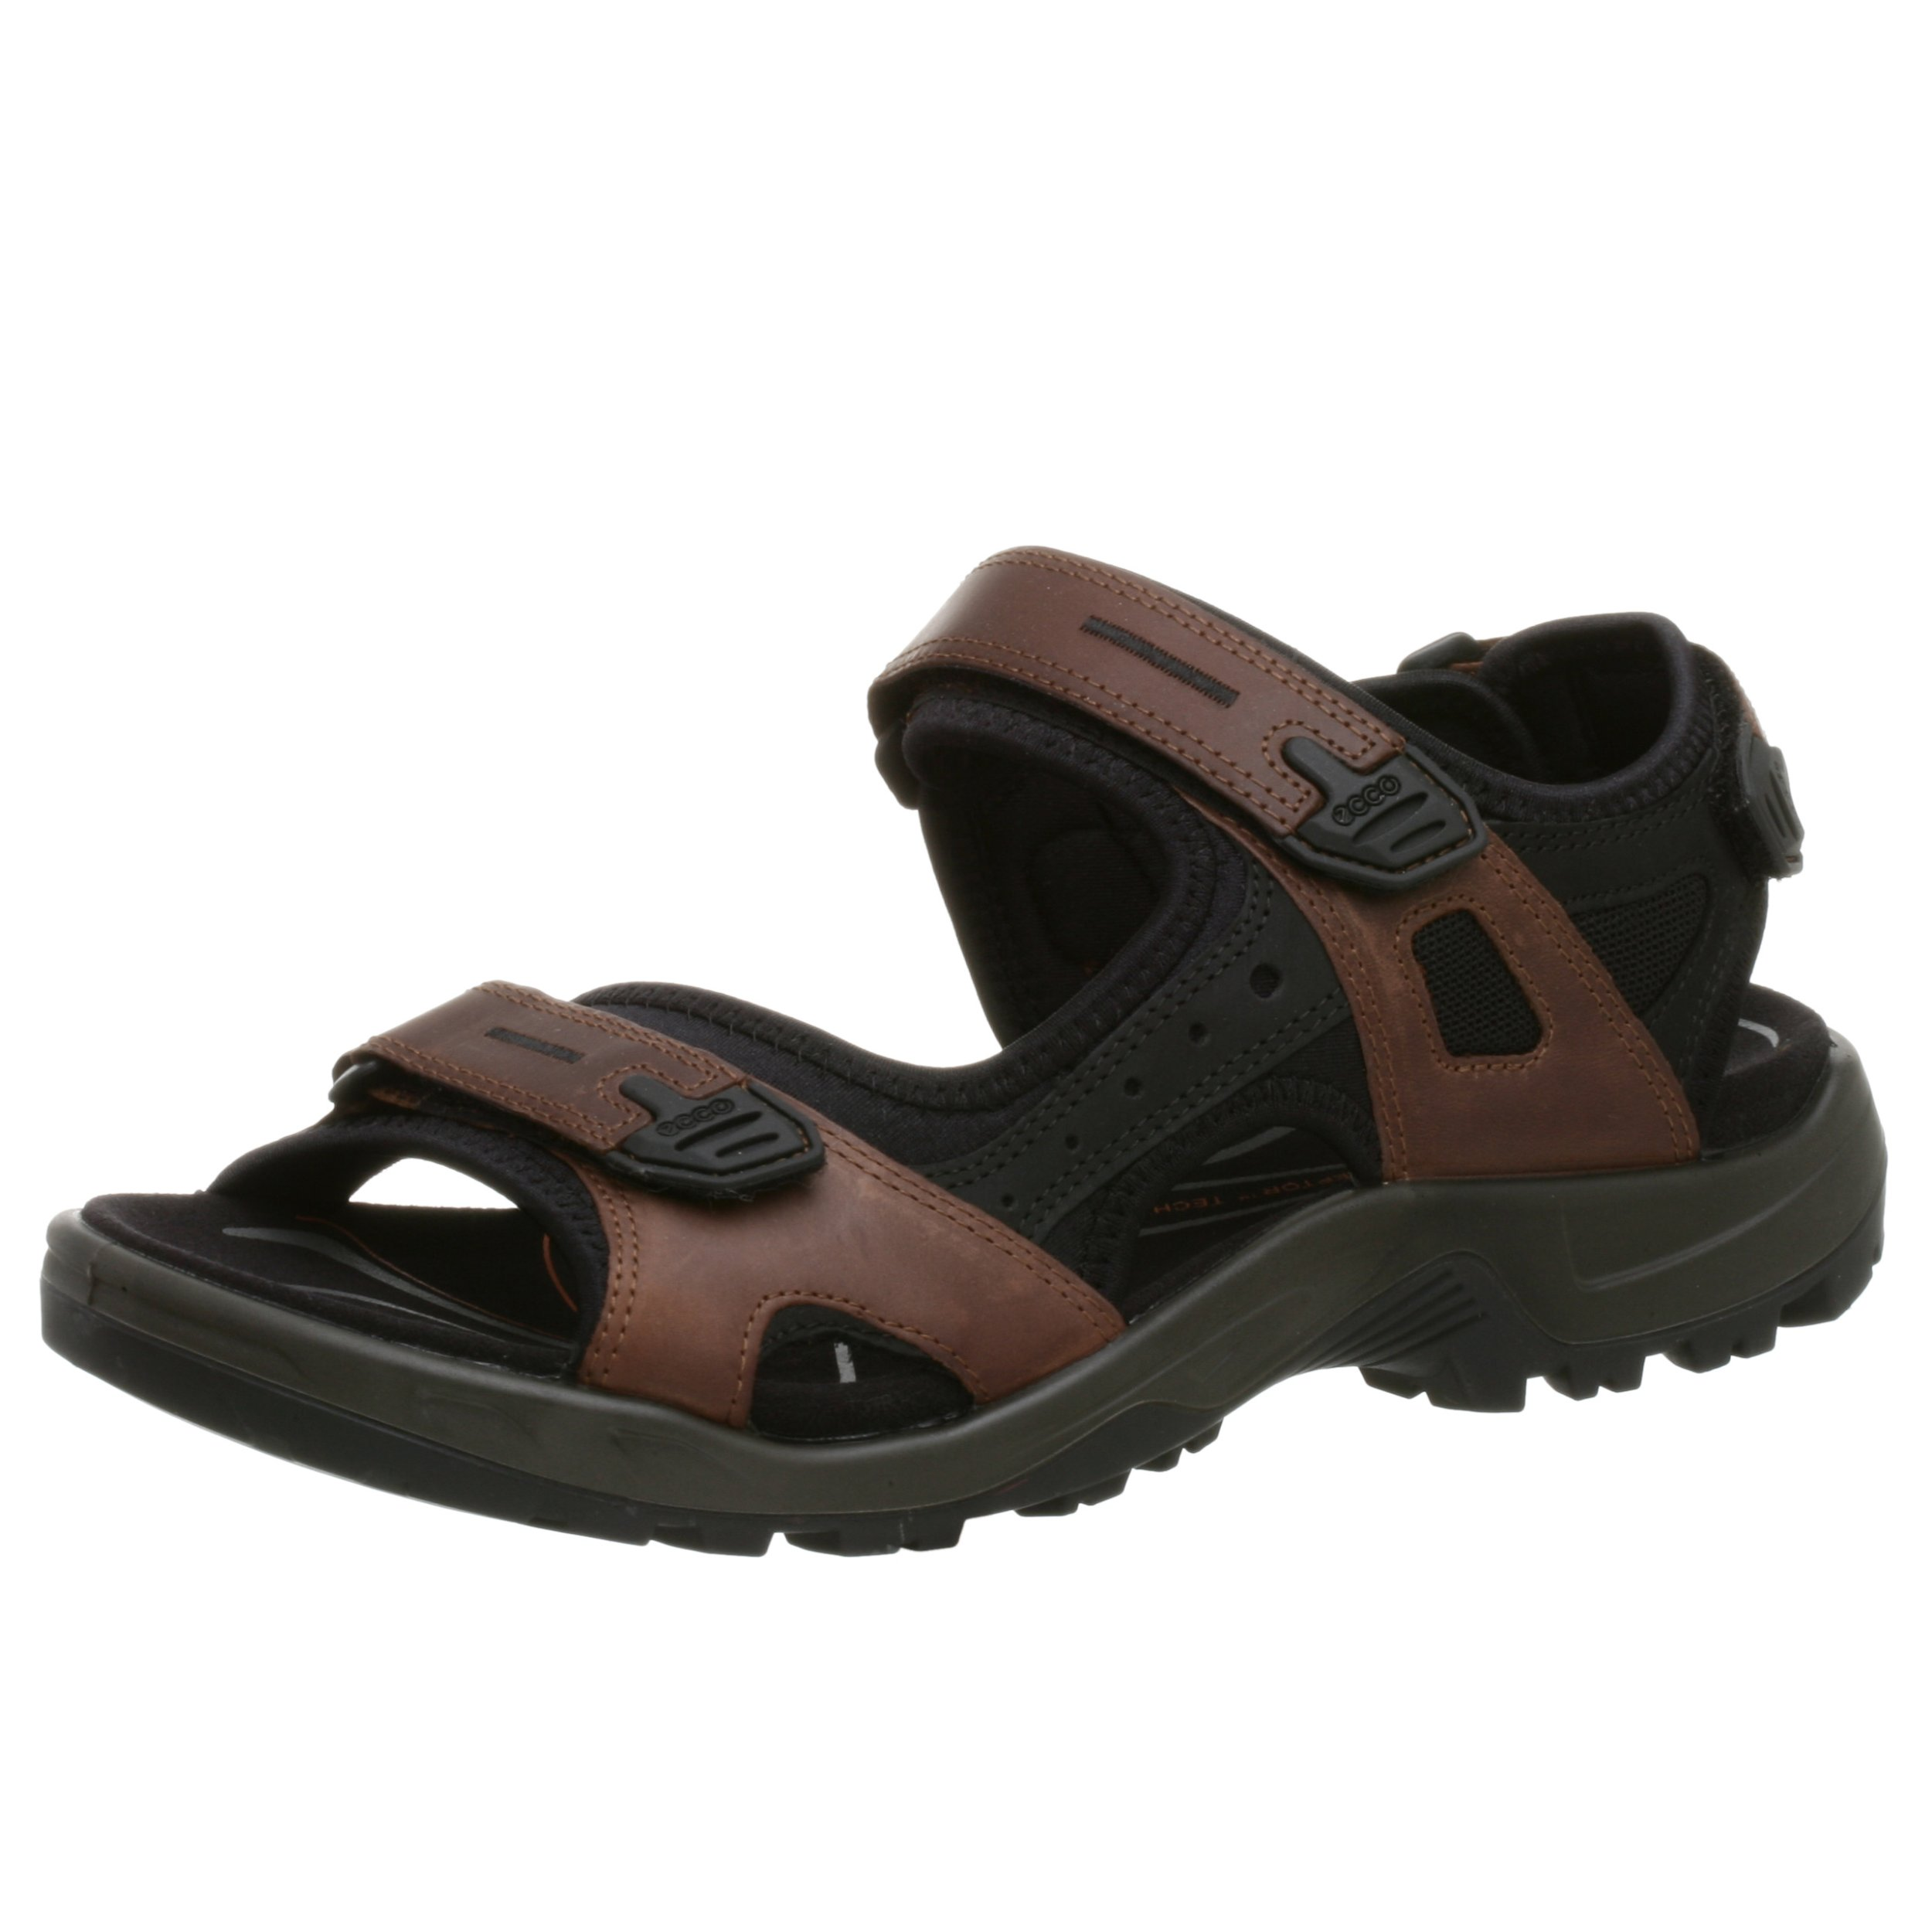 ECCO Men's Yucatan Sandal,Bison/Black/Black,42 EU (US Men's 8-8.5 M)